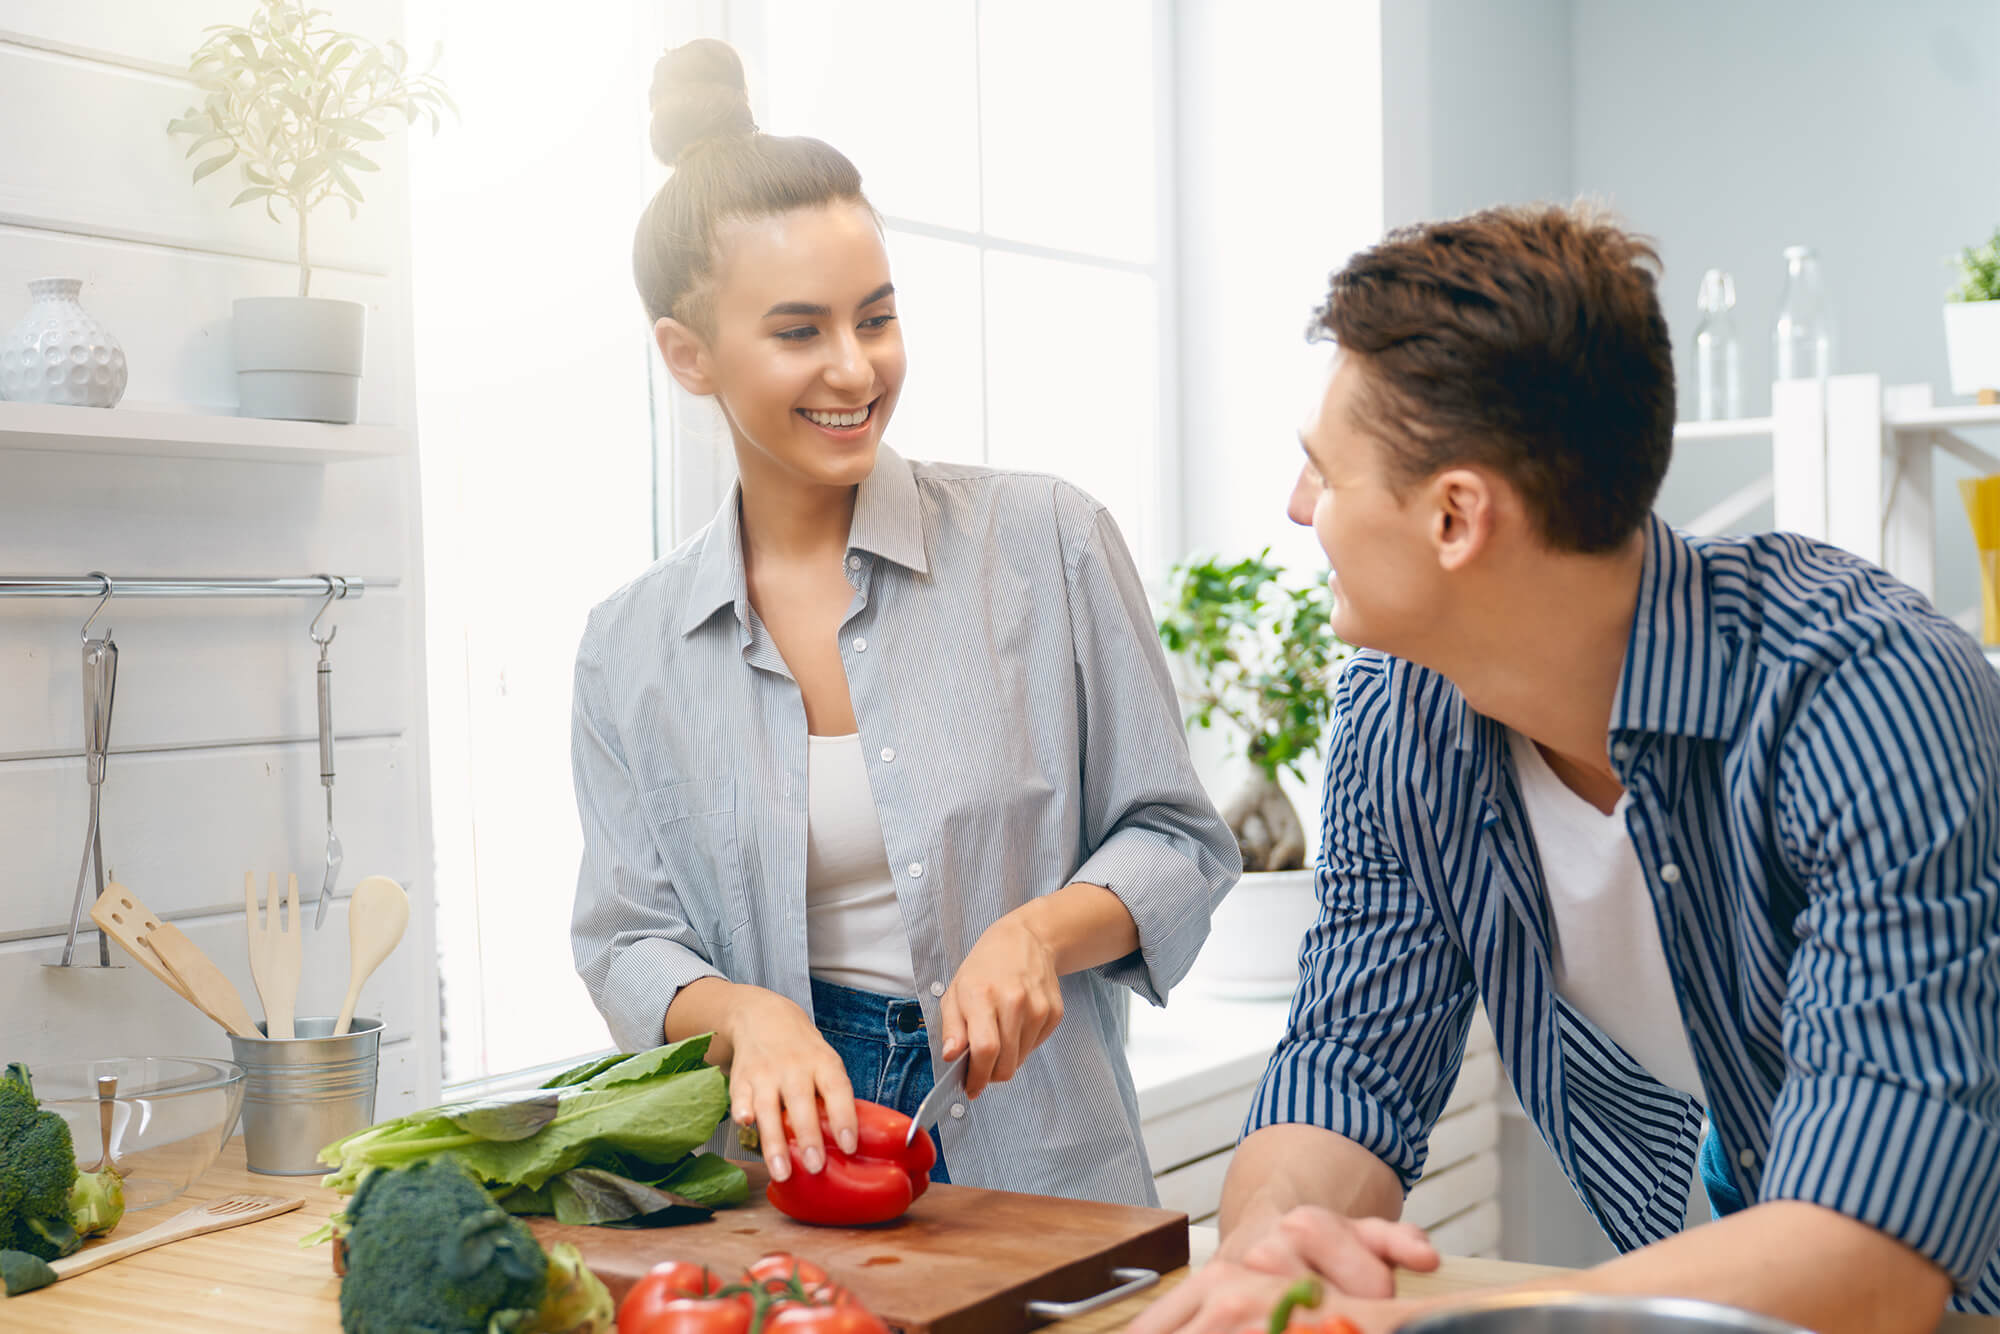 couple in kitchen with food